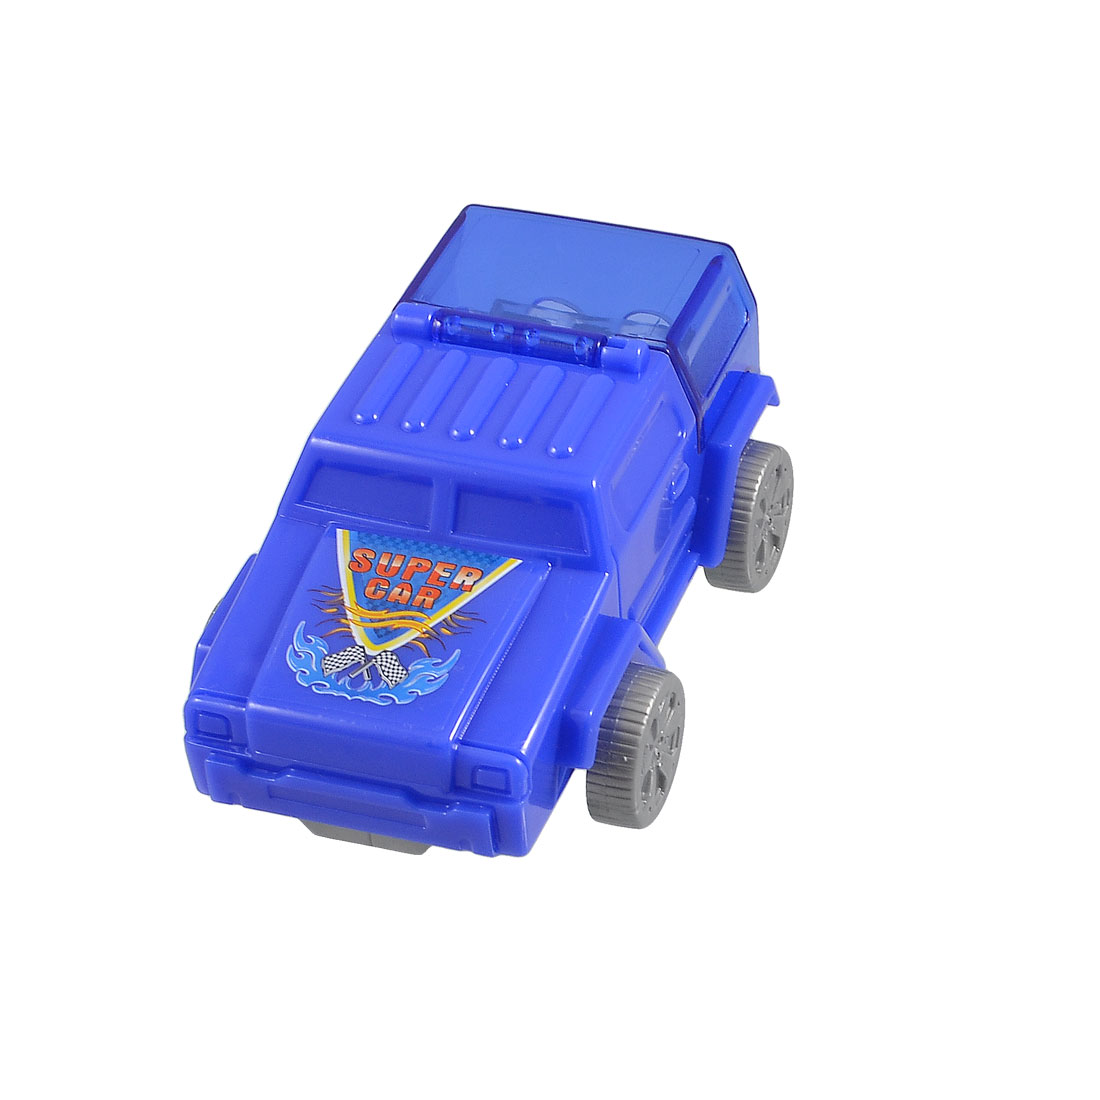 Blue Plastic Car Shaped Double Hole Design Pencil Sharpener